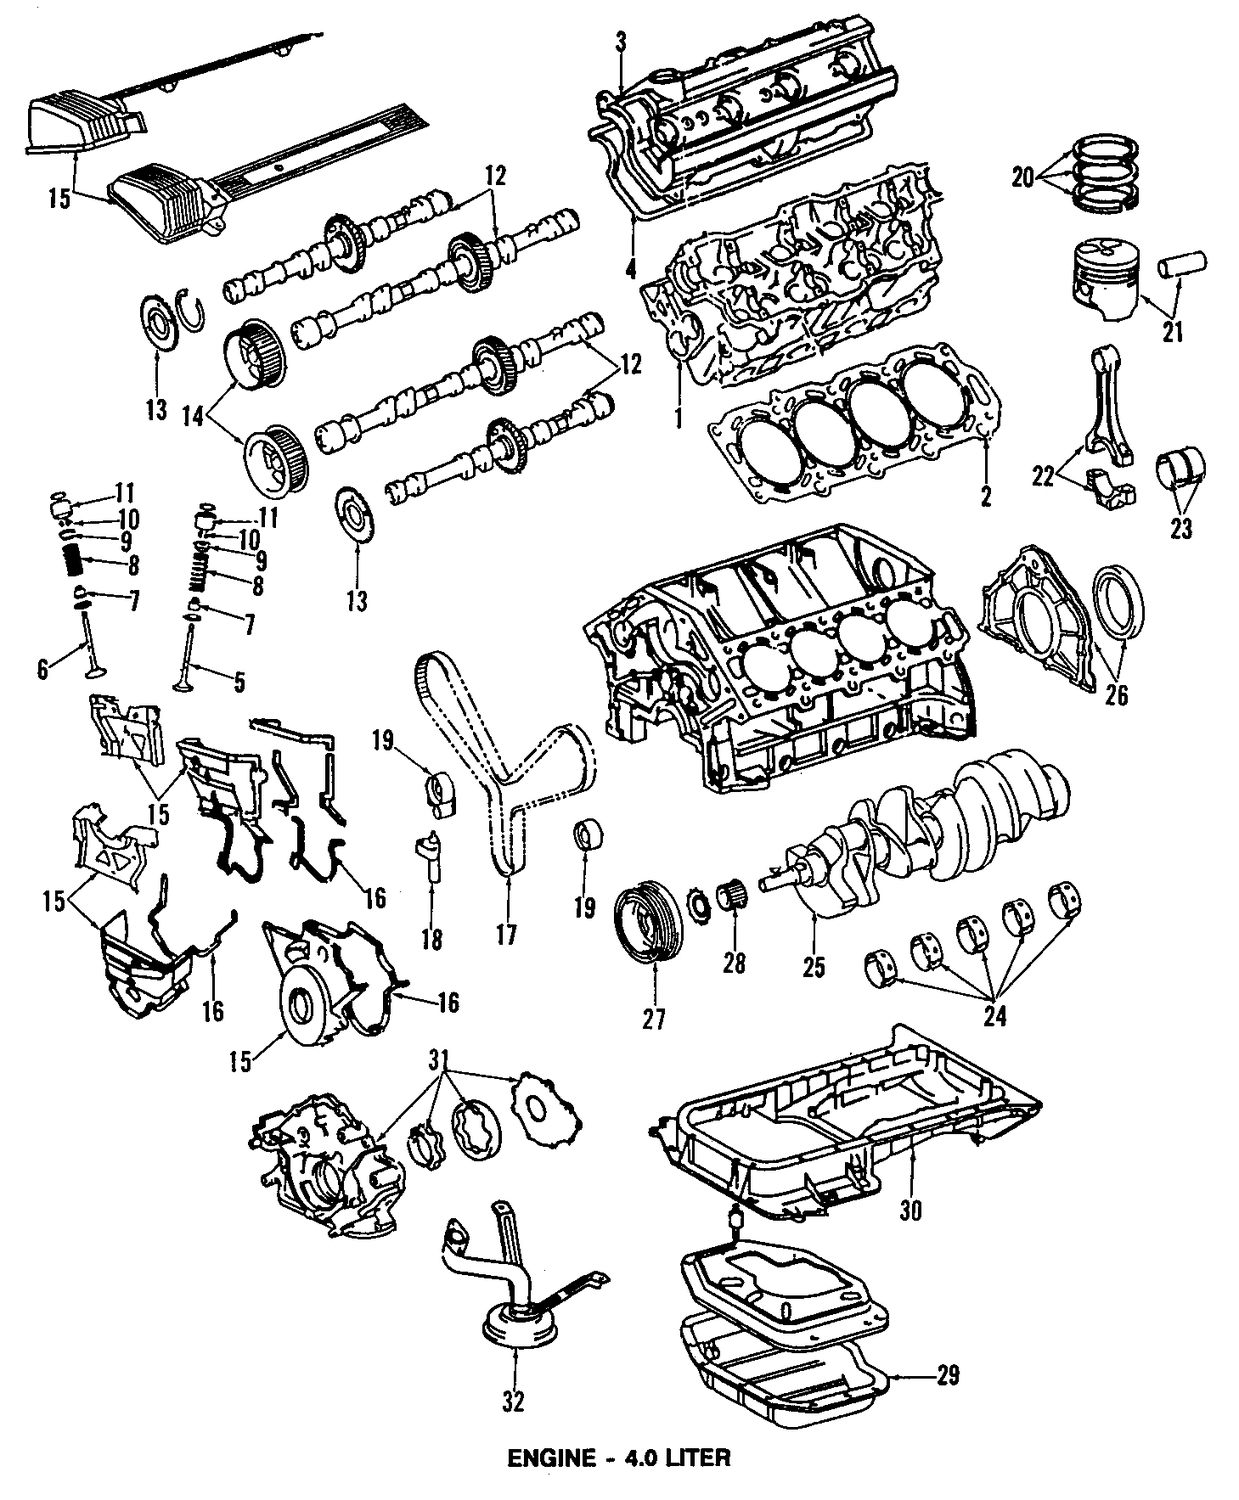 97 Lexus Es300 Engine Diagram - Wiring Diagram •